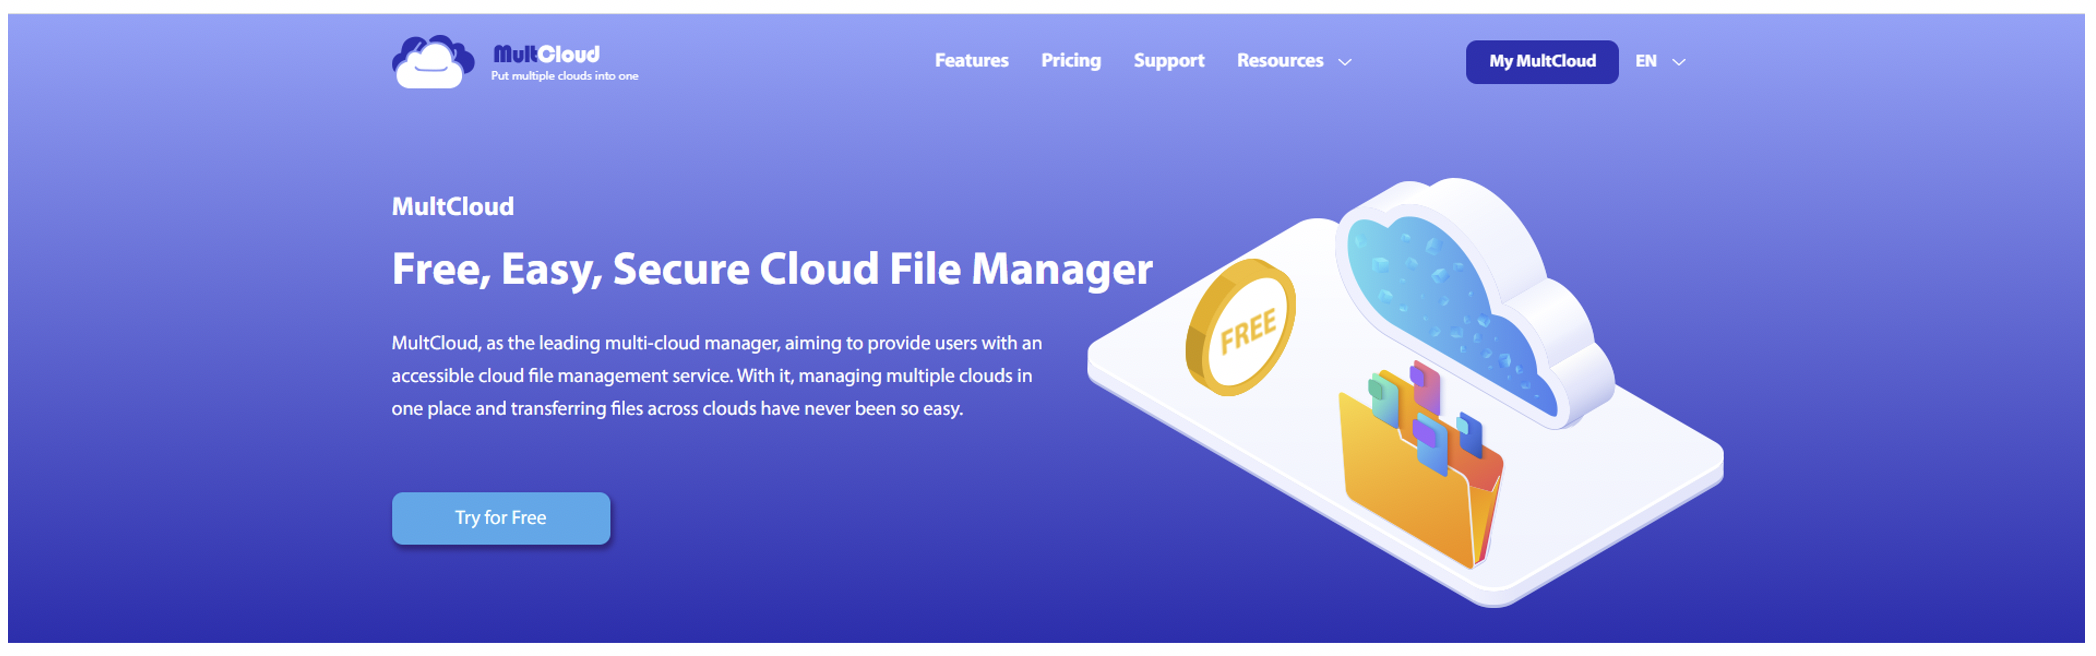 Best Free Way to Move Files across Clouds without Installing Application